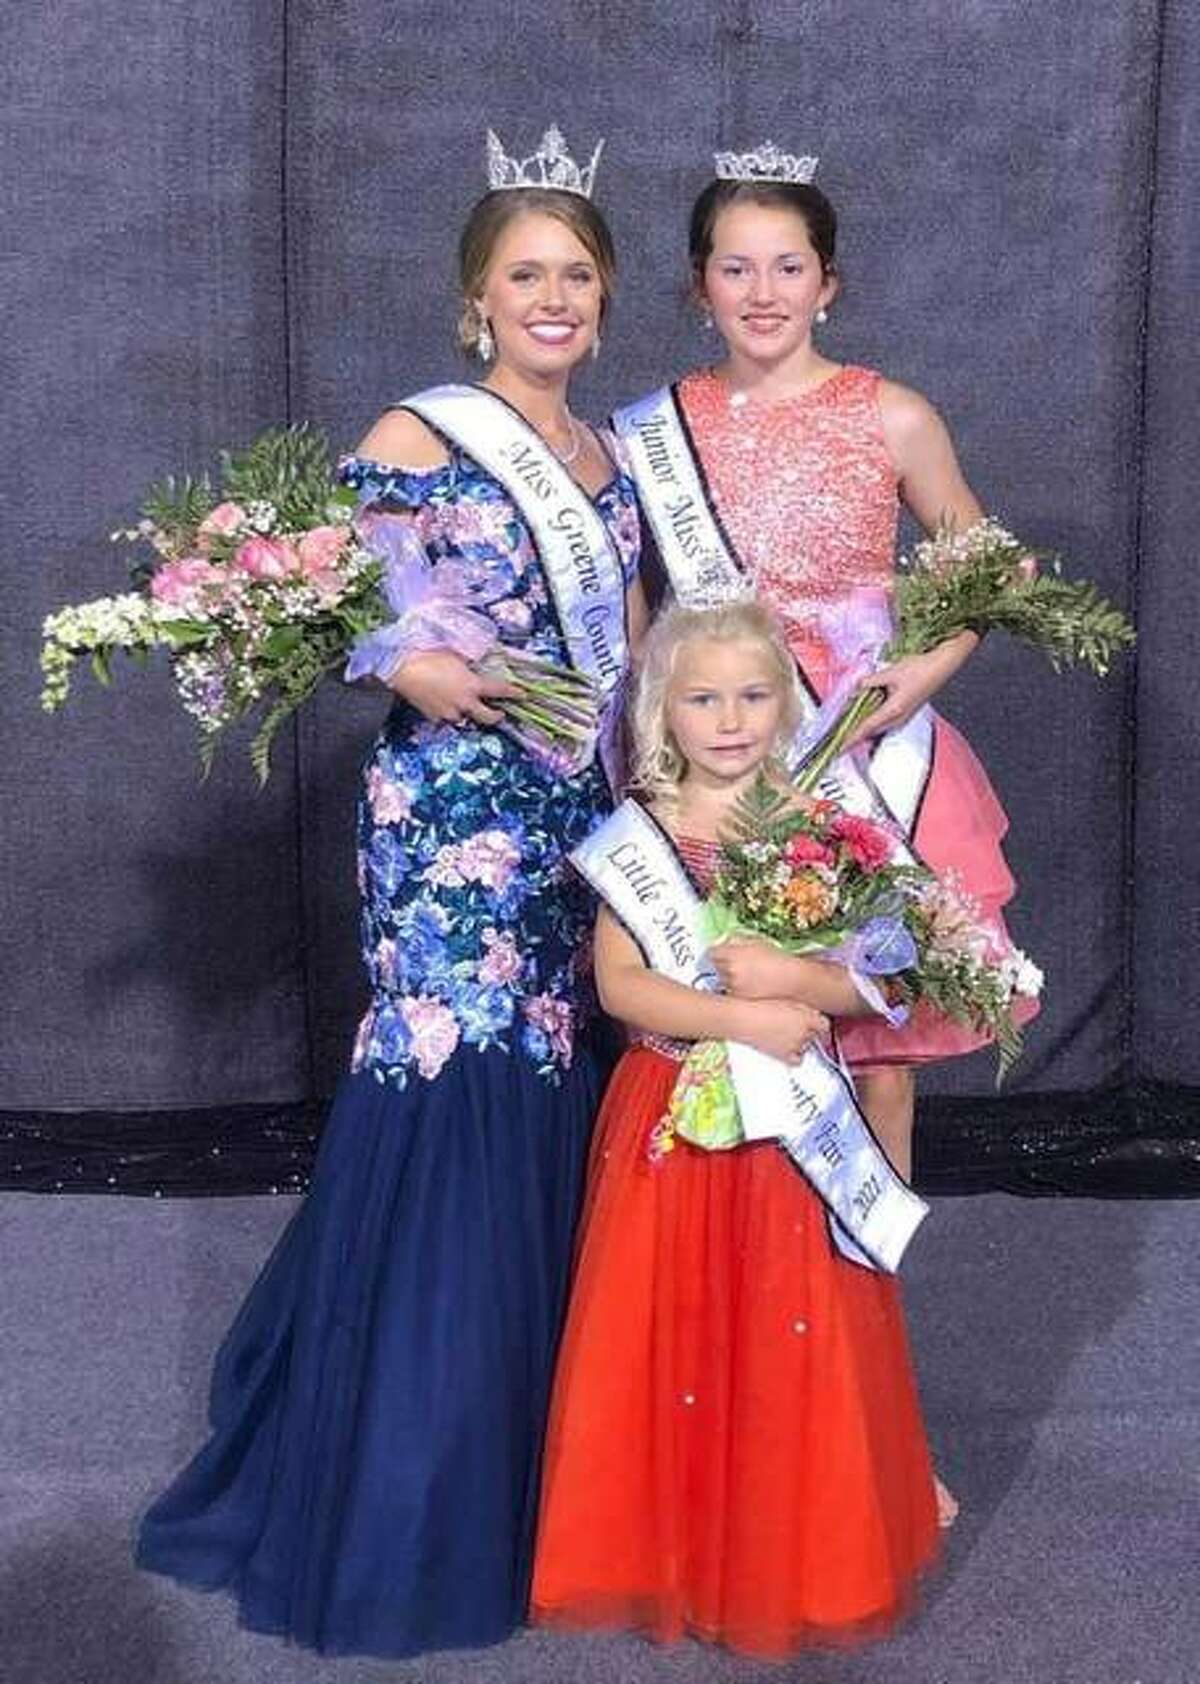 Lydia Lansaw, left, was crowned Miss Greene County Tuesday night at the Greene County Fair in Carrollton. Leah Wood, right, was crowned Junior Miss Greene County and Brooke Thornton, center, was crowned Little Miss Greene County. The area's first fair of the year continues through Saturday.